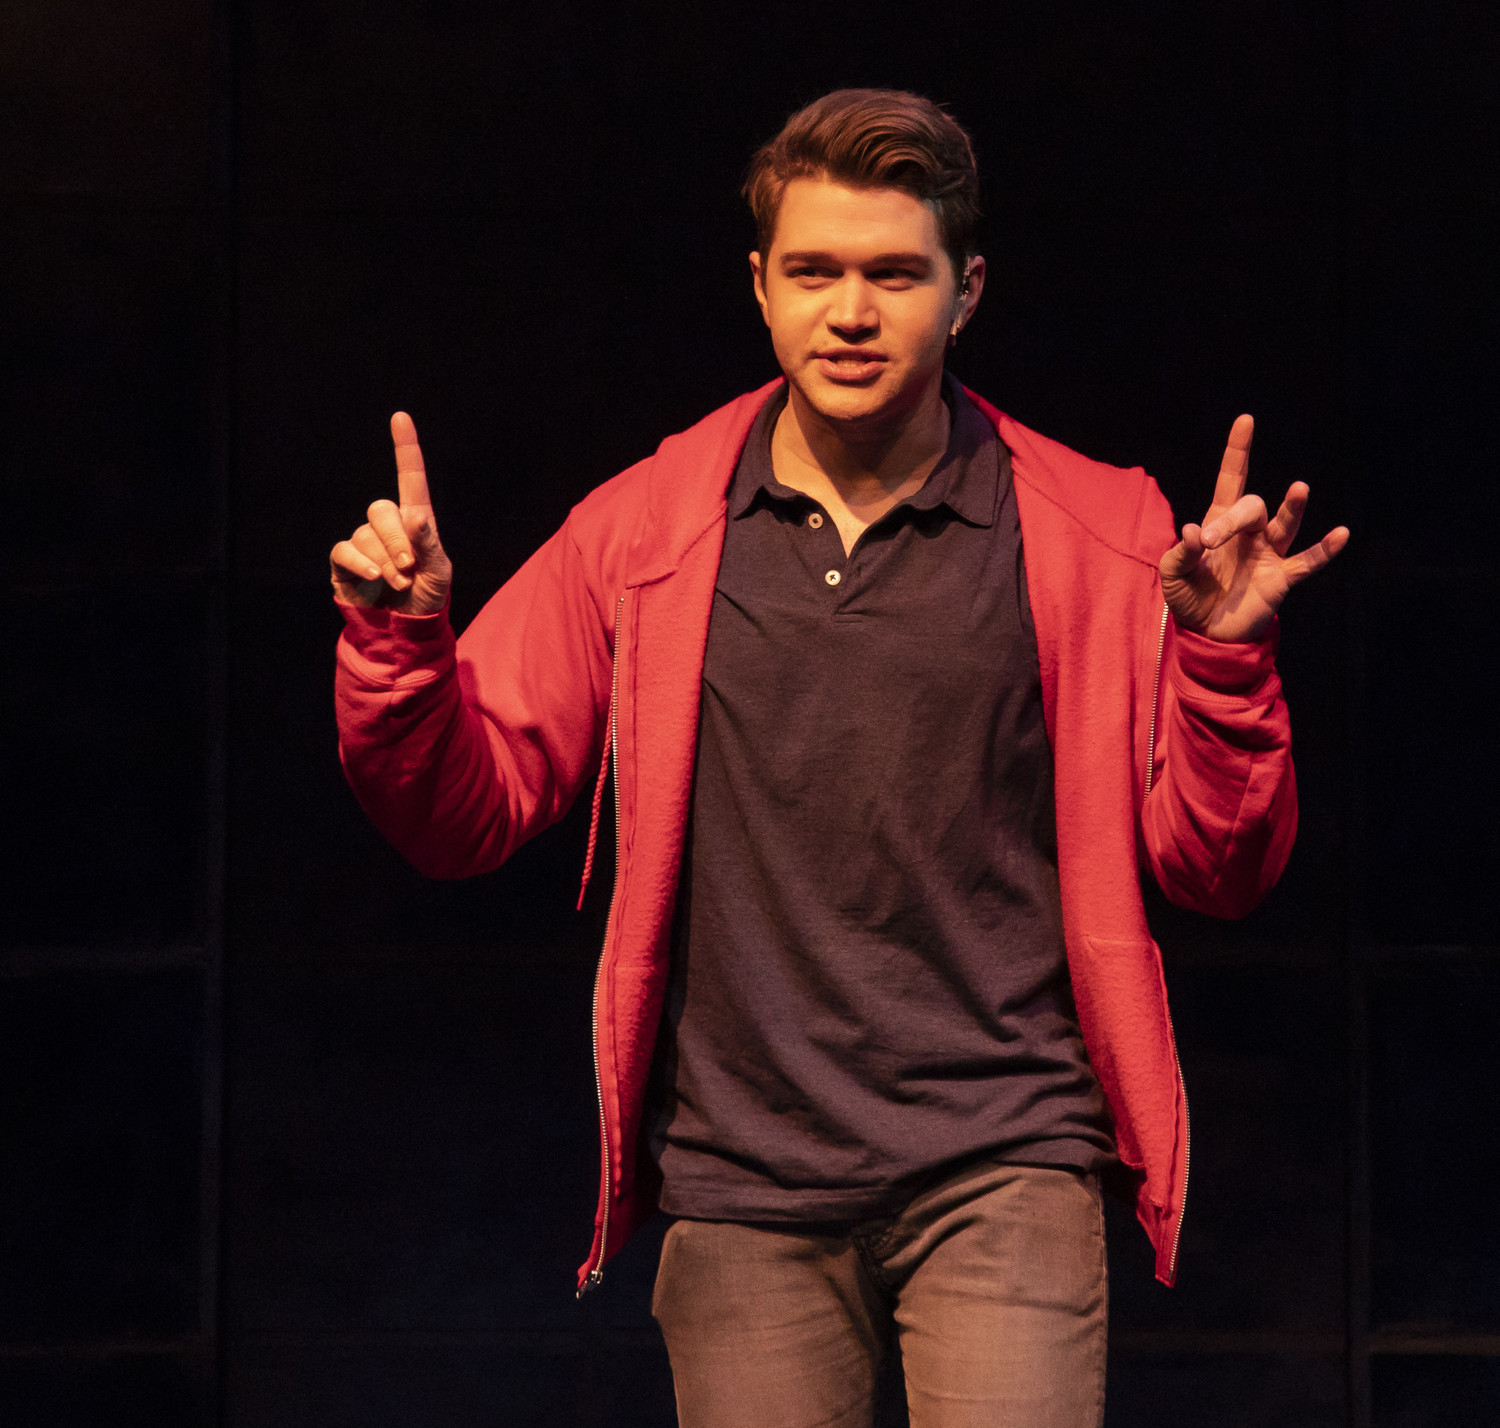 BWW Review: THE CURIOUS INCIDENT OF THE DOG IN THE NIGHT-TIME at Florida Studio Theatre